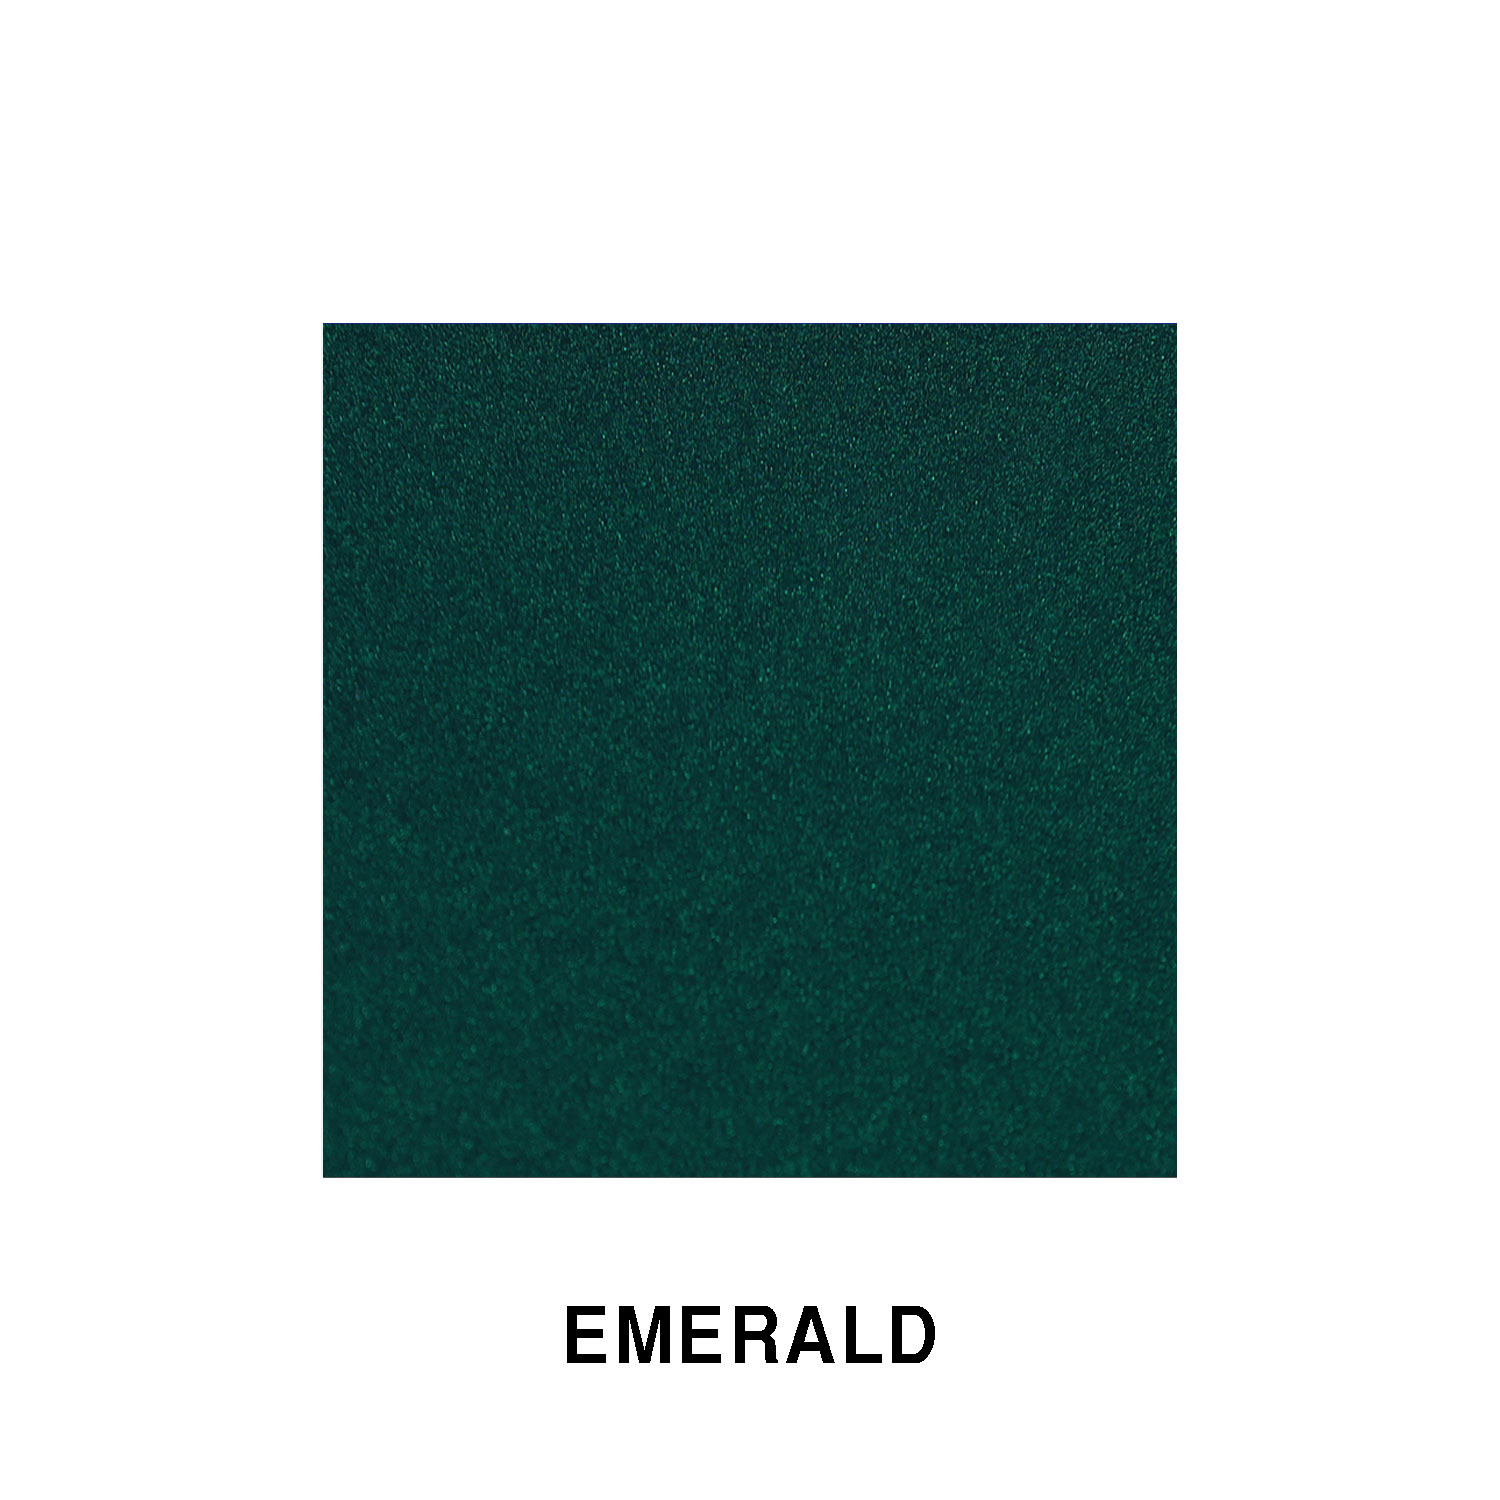 Emerald Green Metallic Fiberglass Finish